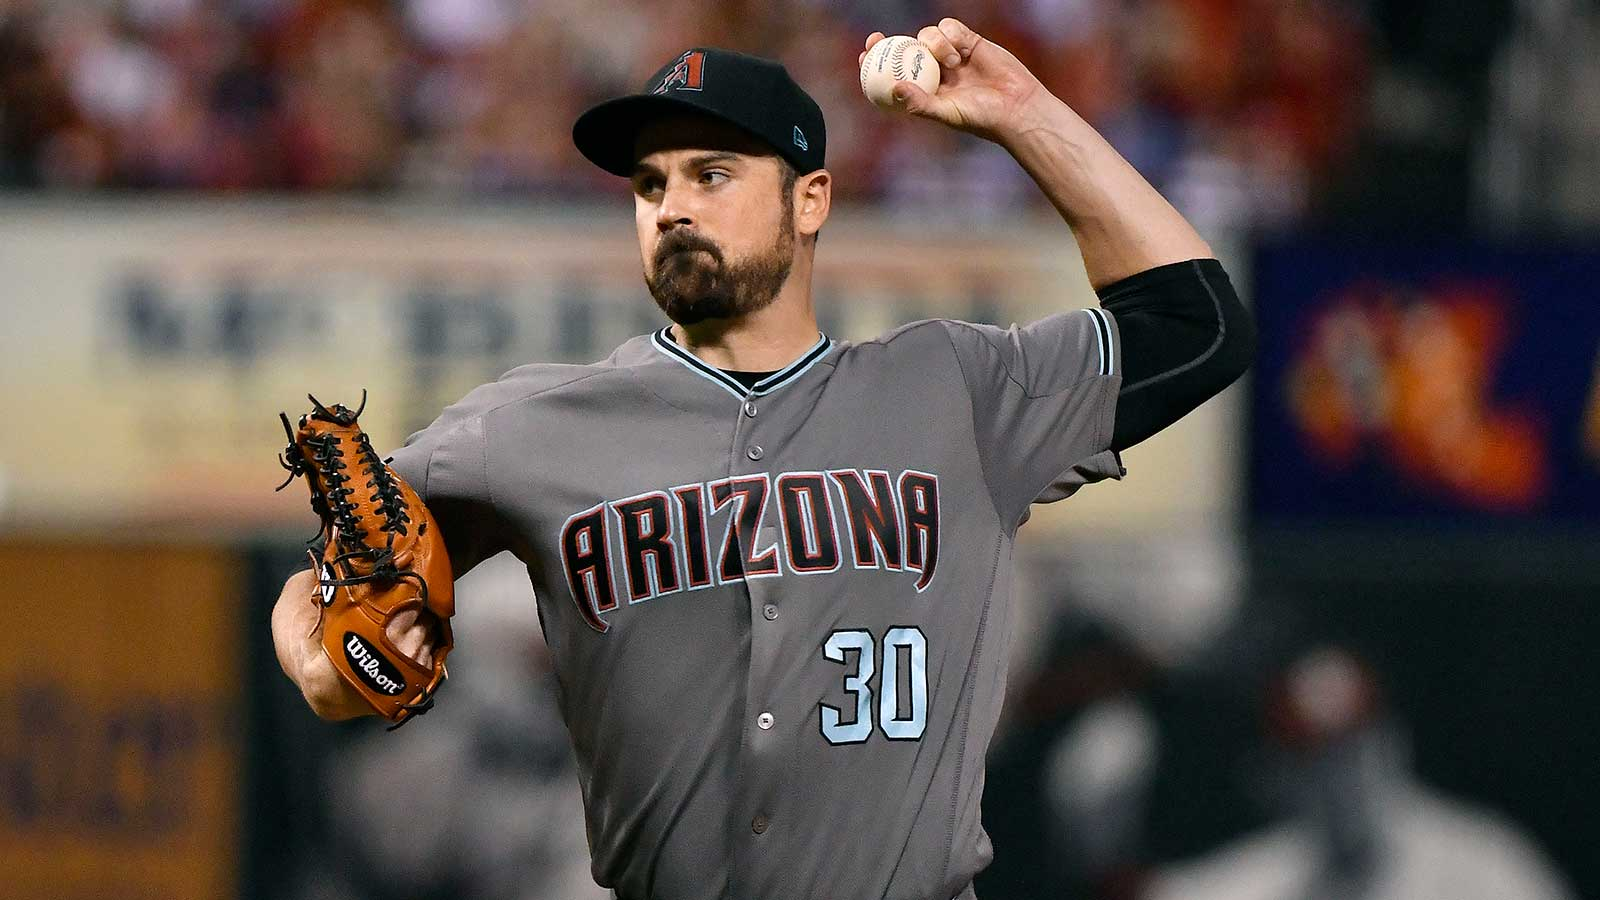 D-backs sign reliever T.J. McFarland to one-year deal